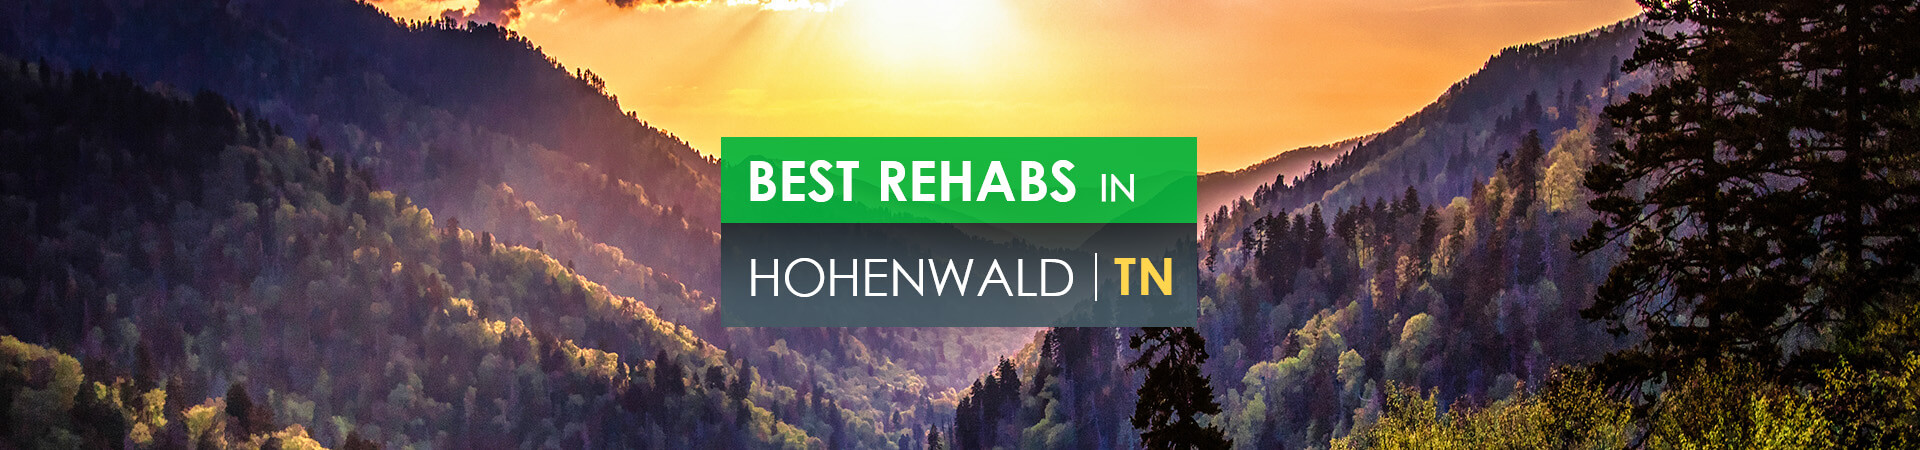 Best rehabs in Hohenwald, TN